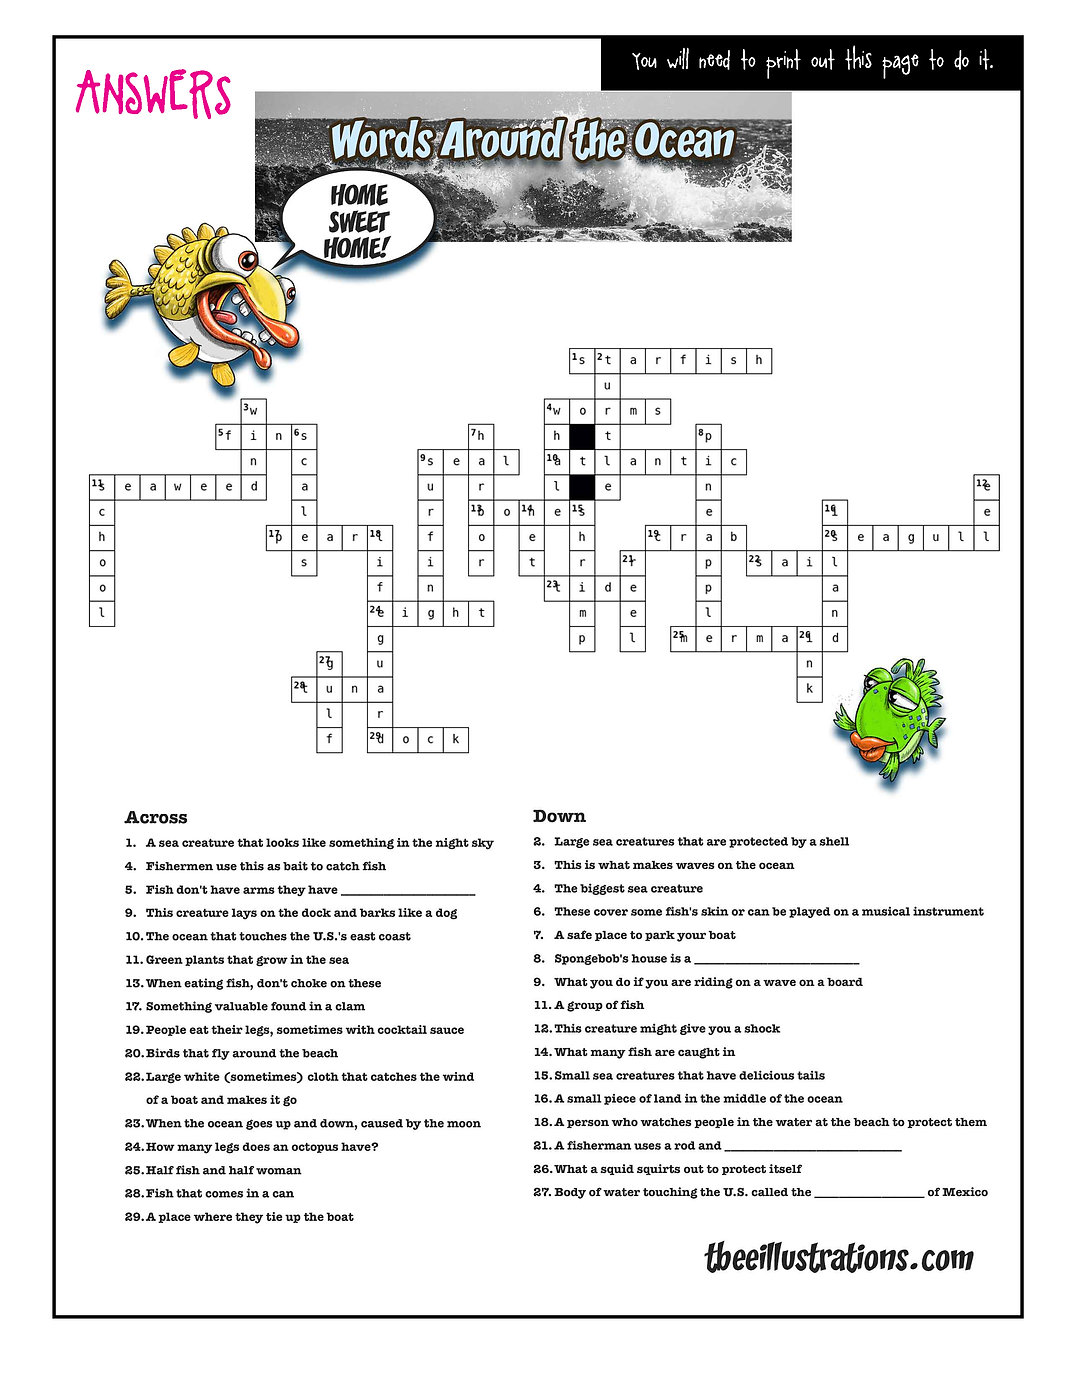 Crossword-around-ocean-answers4online.jp